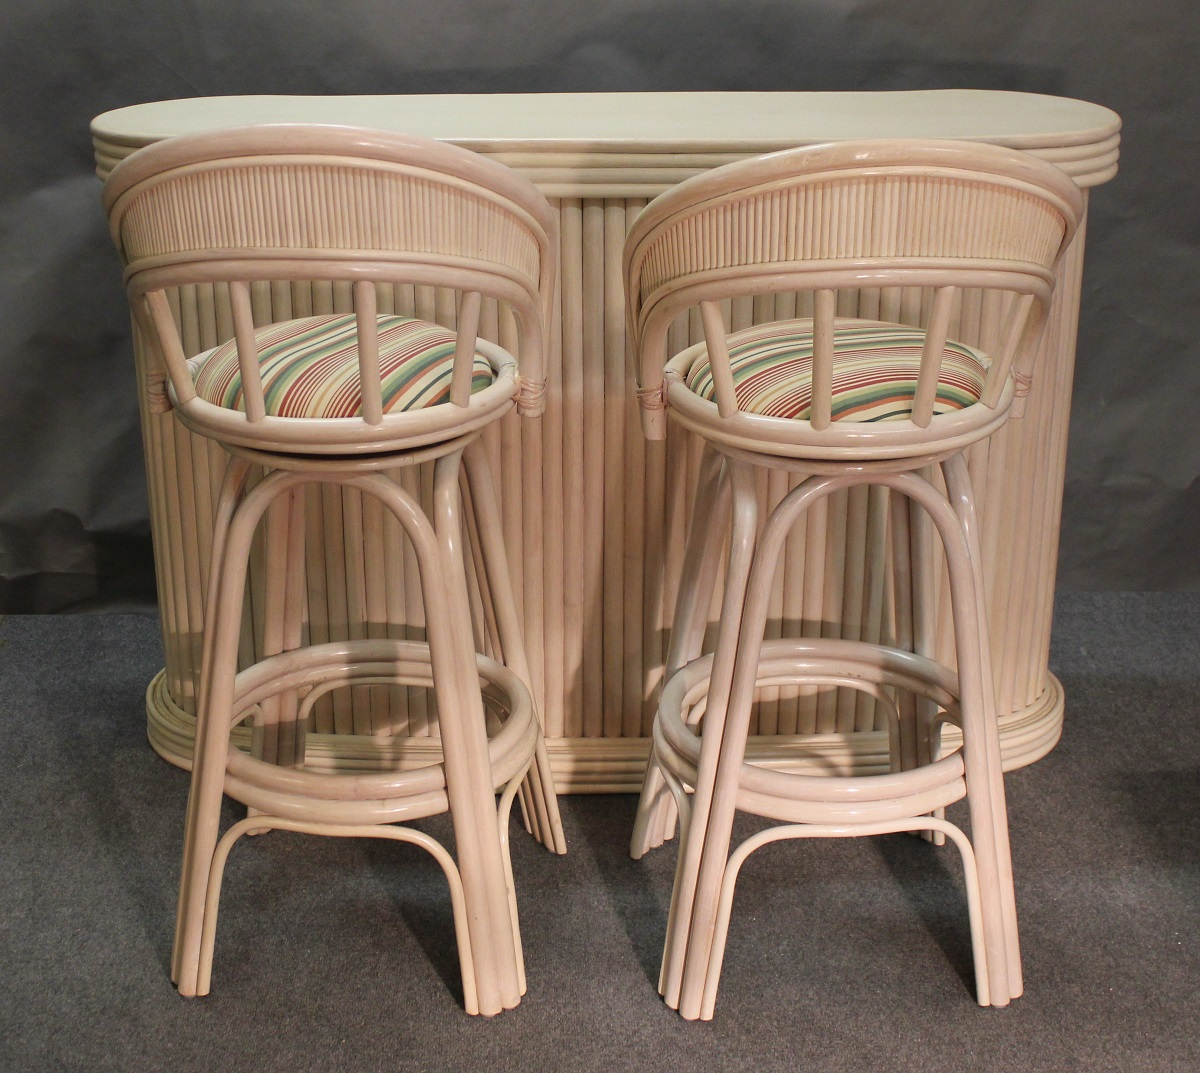 Whitewash Rattan Bar and Stools